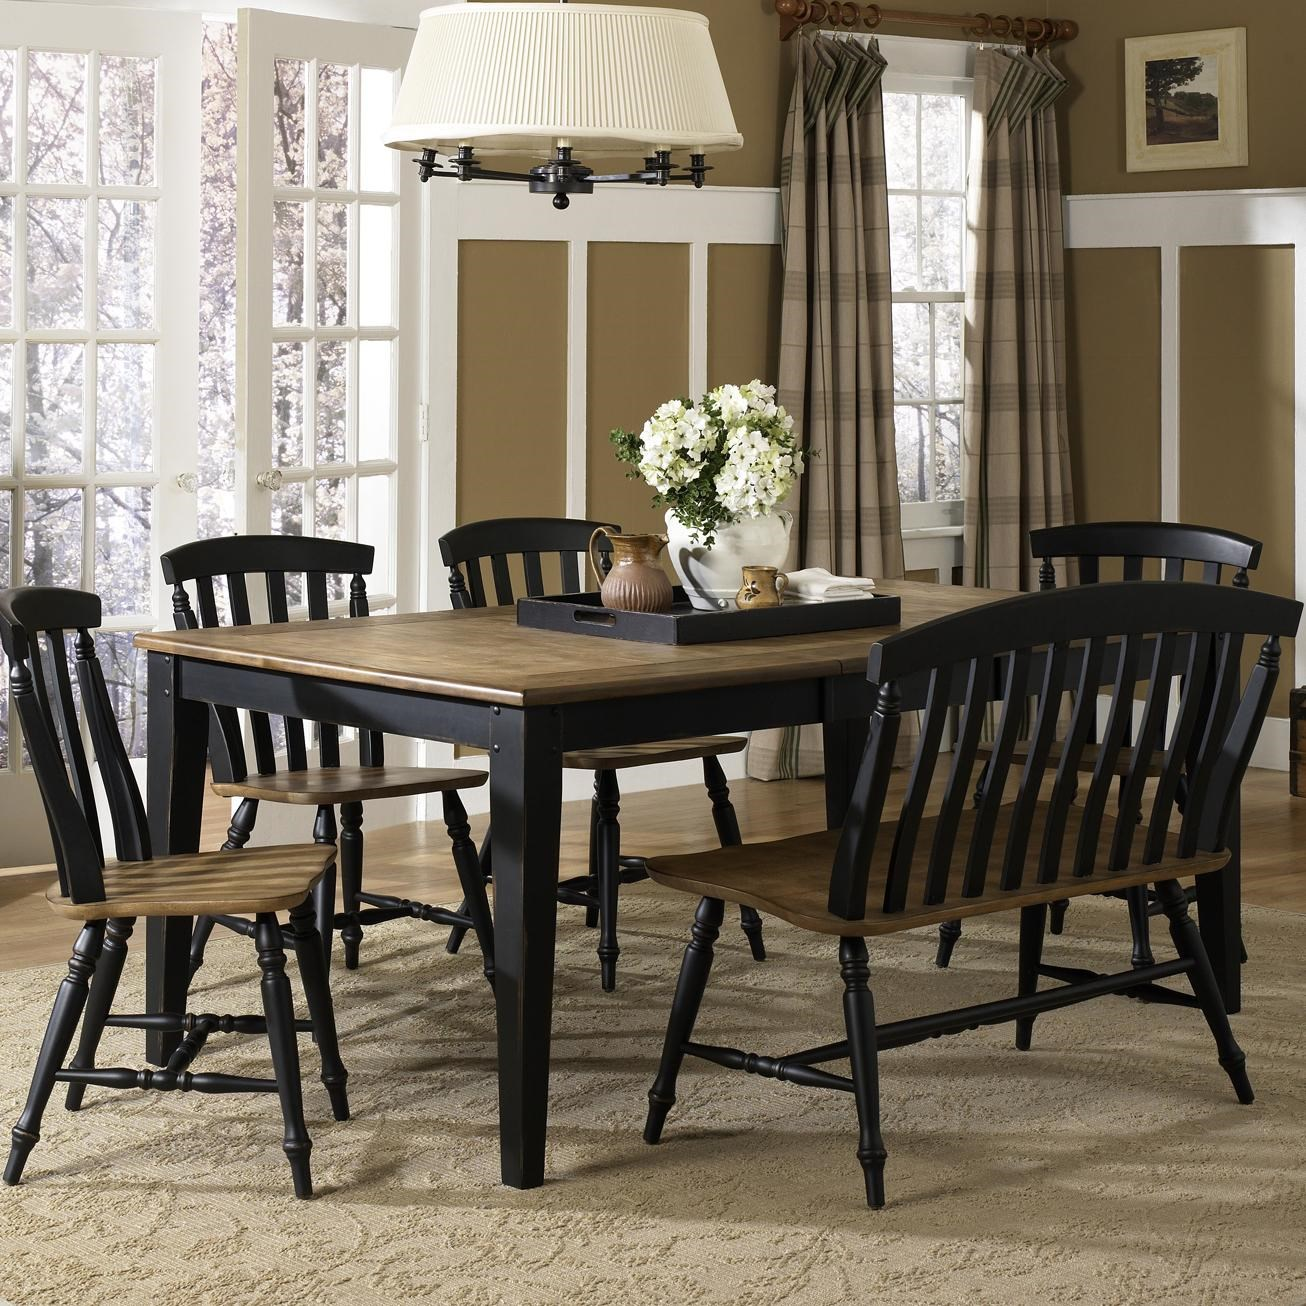 Charmant Liberty Furniture Al Fresco II Six Piece Dining Table Set With Chairs And  Bench